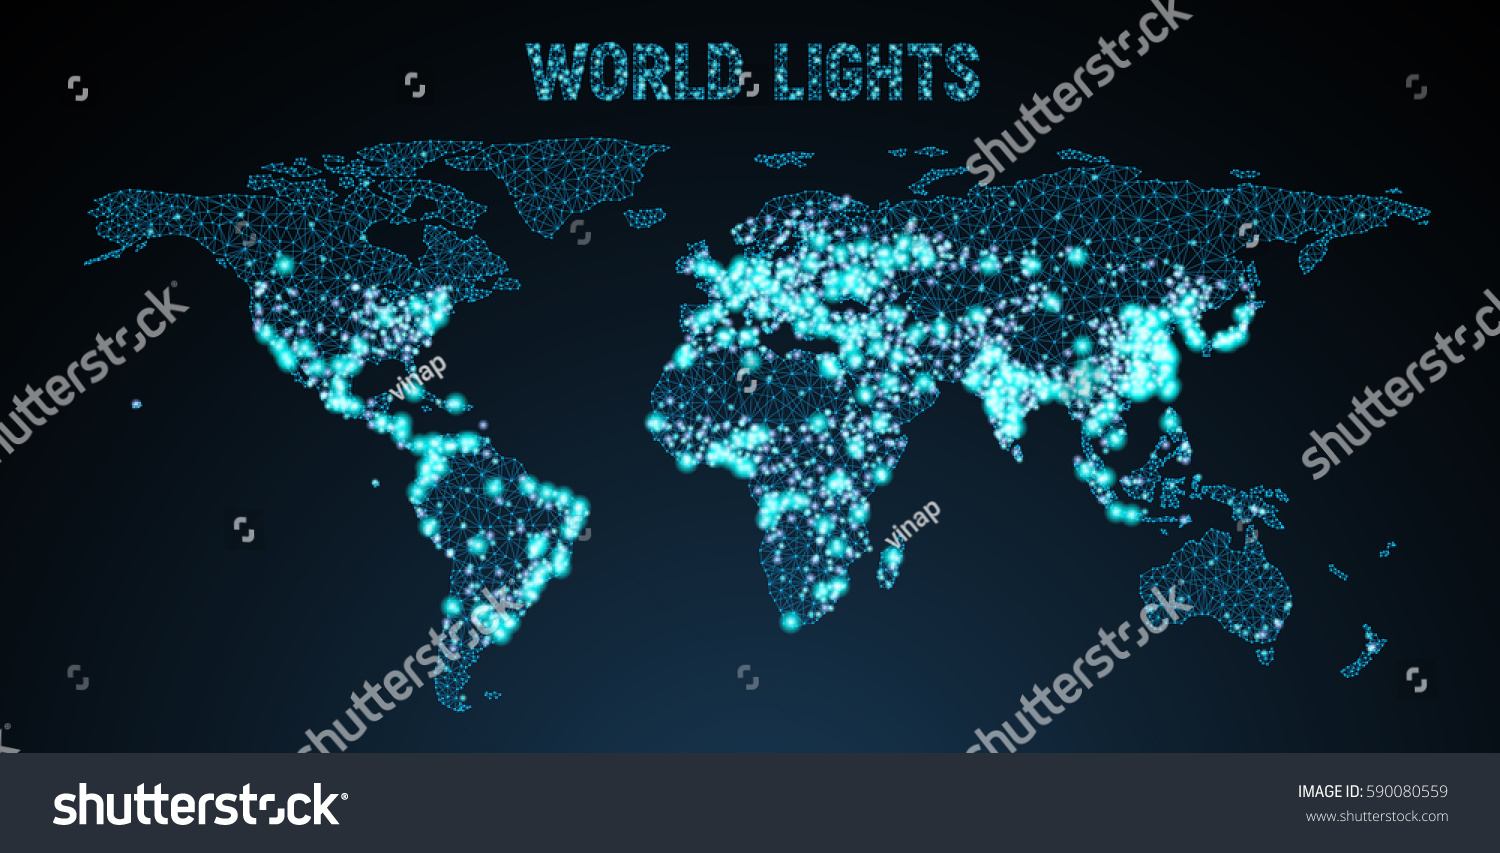 Vector lowpoly image global map lights stock vector 590080559 vector low poly image of a global map with lights in the form of world gumiabroncs Images